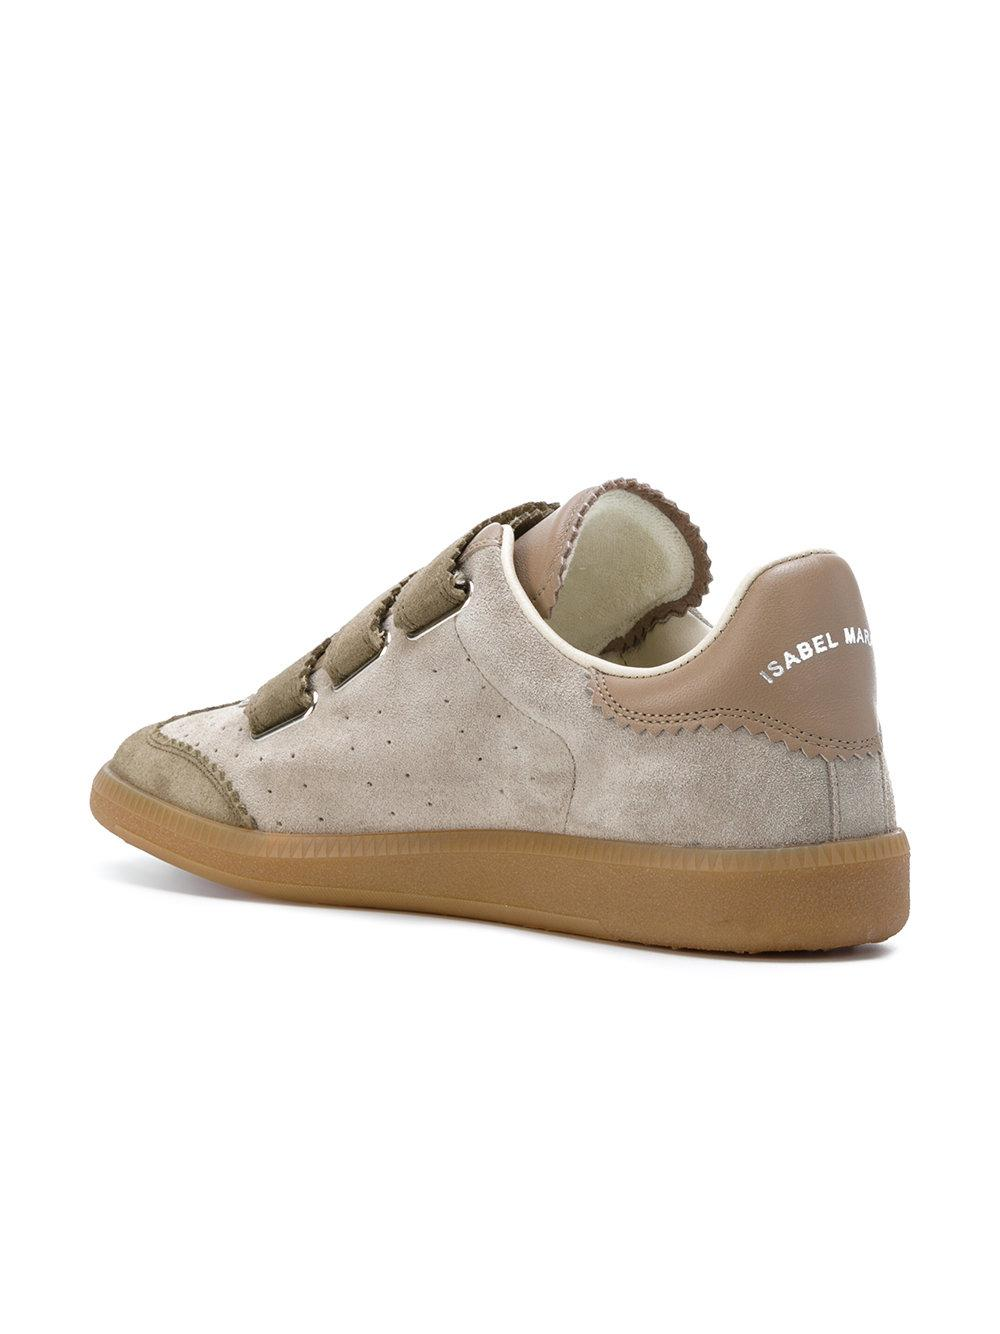 lyst isabel marant low top sneakers in natural. Black Bedroom Furniture Sets. Home Design Ideas